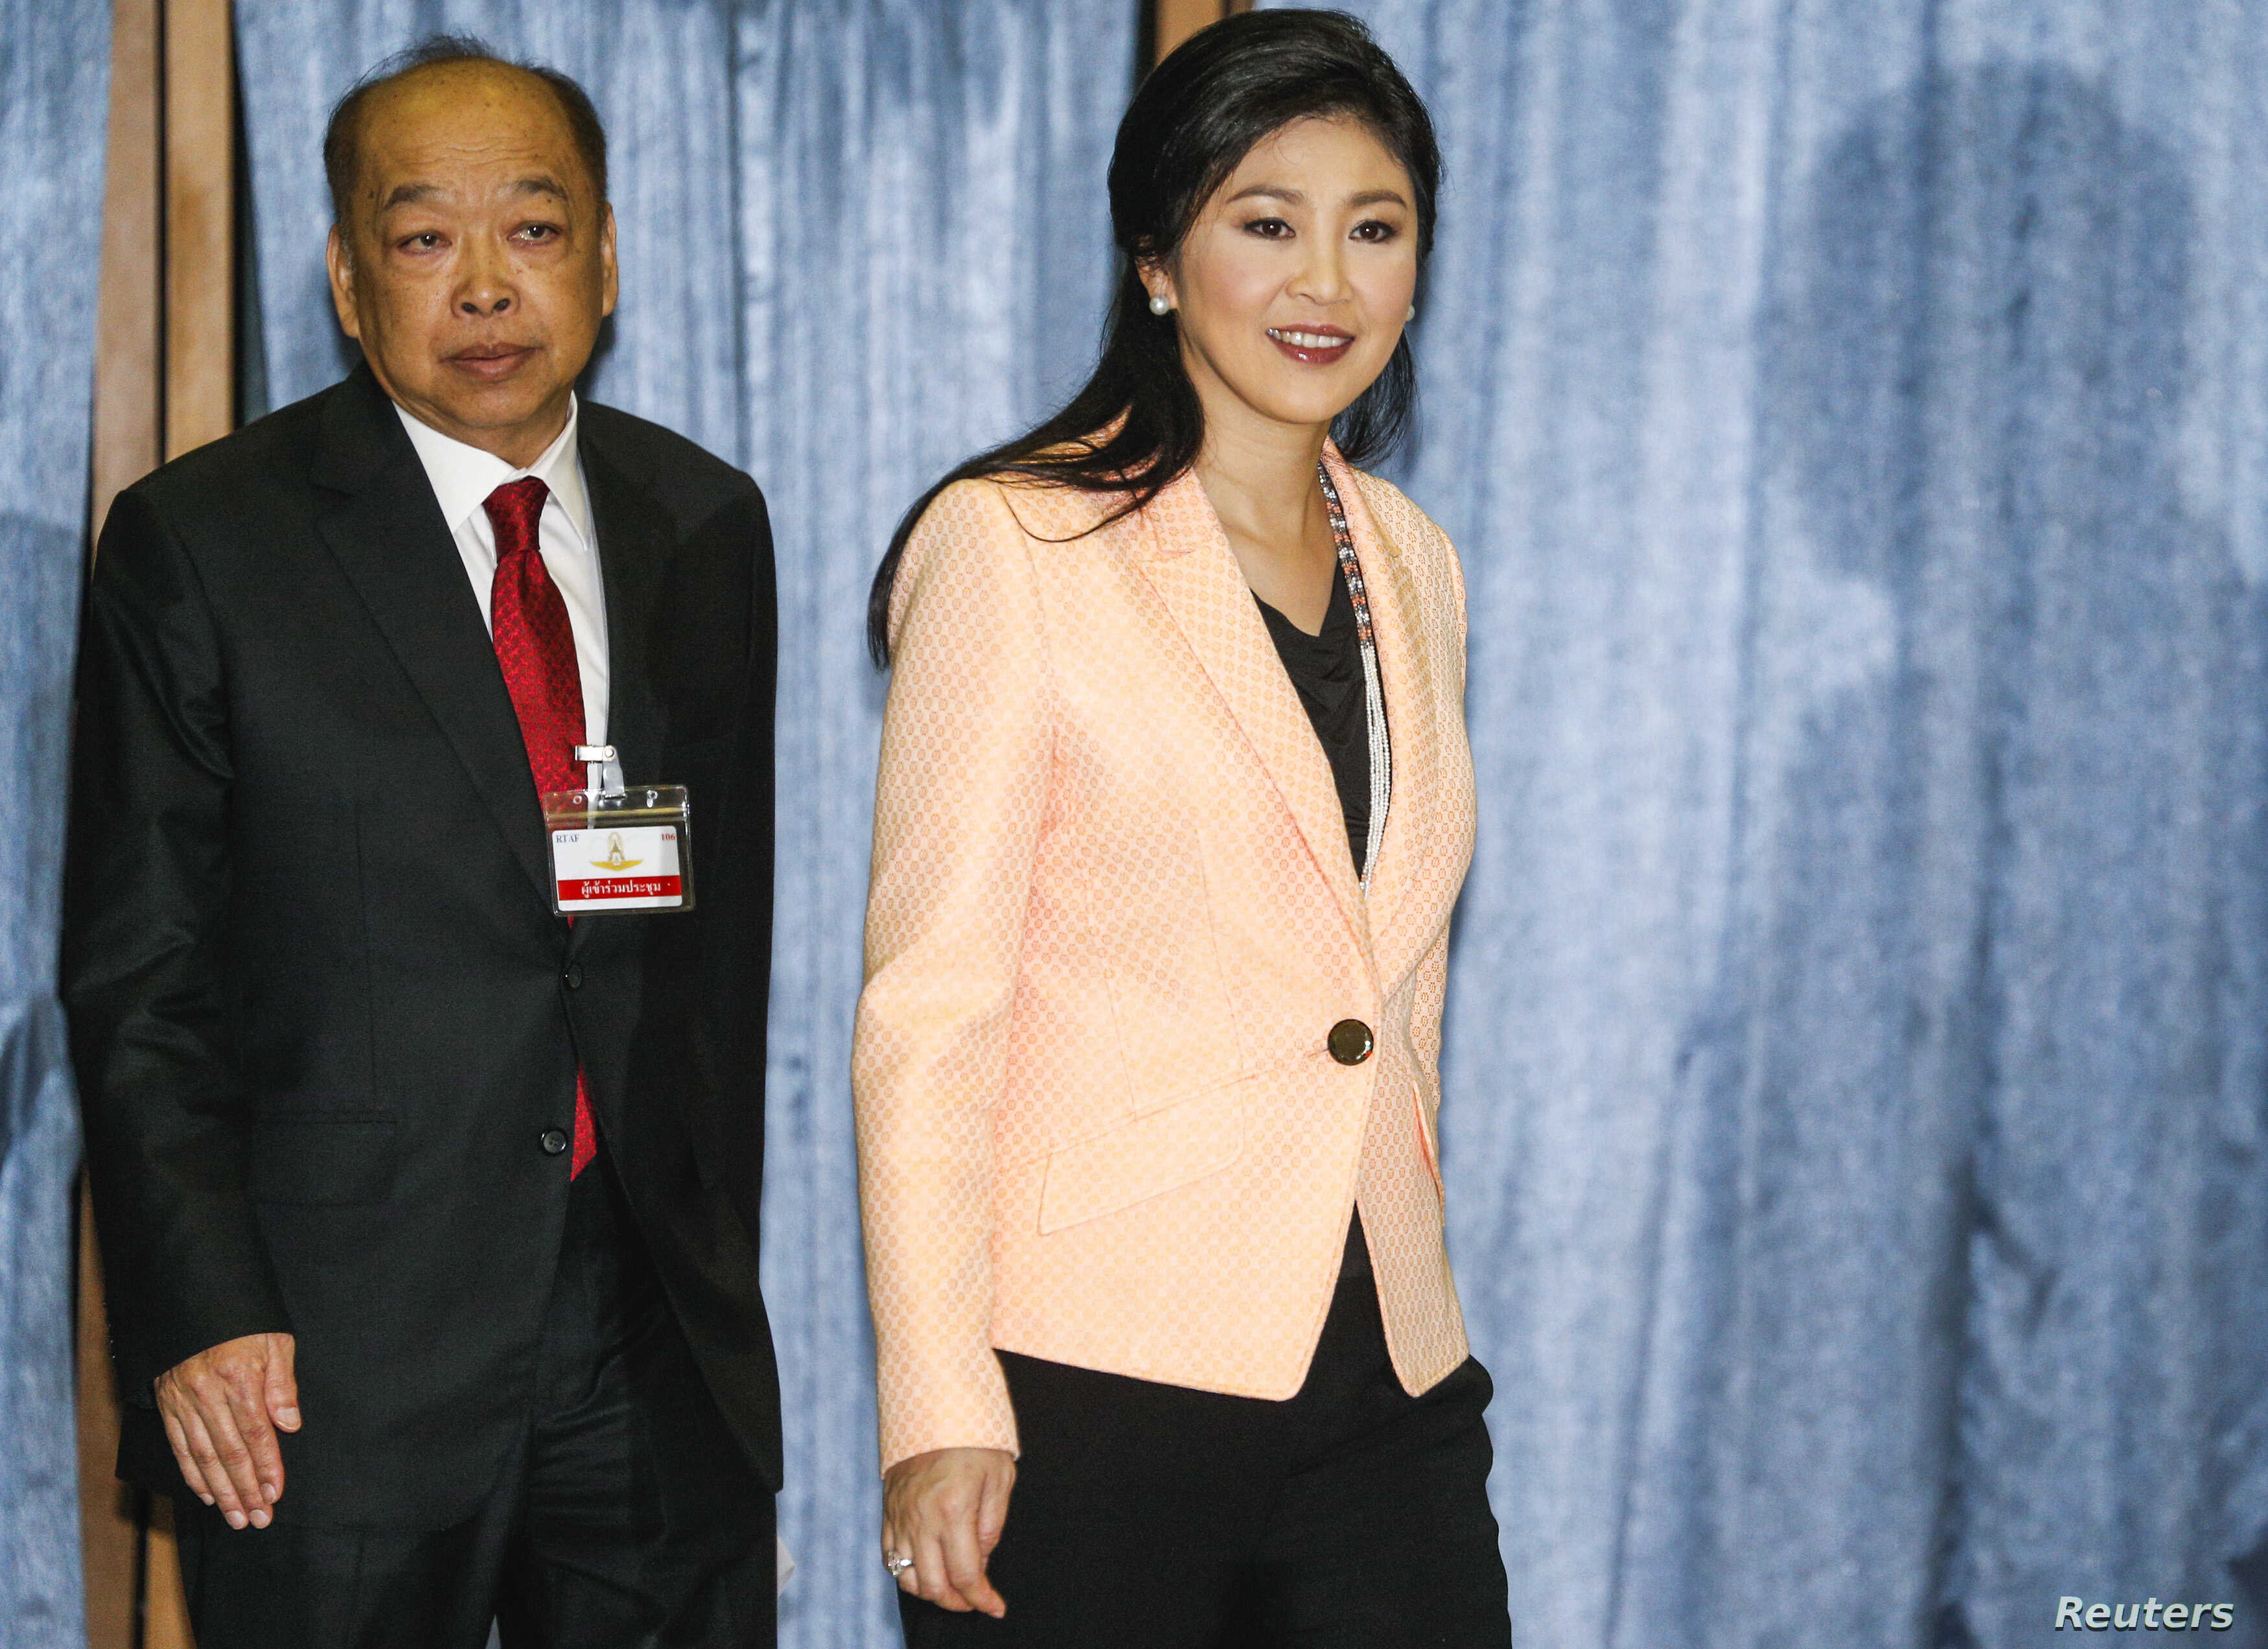 Thailand's Prime Minister Yingluck Shinawatra (R) and Deputy Prime Minister Surapong Tovichakchaikul arrive before a meeting with the Election Commission at the Royal Thai Air Force Academy in Bangkok, Apr. 30, 2014.